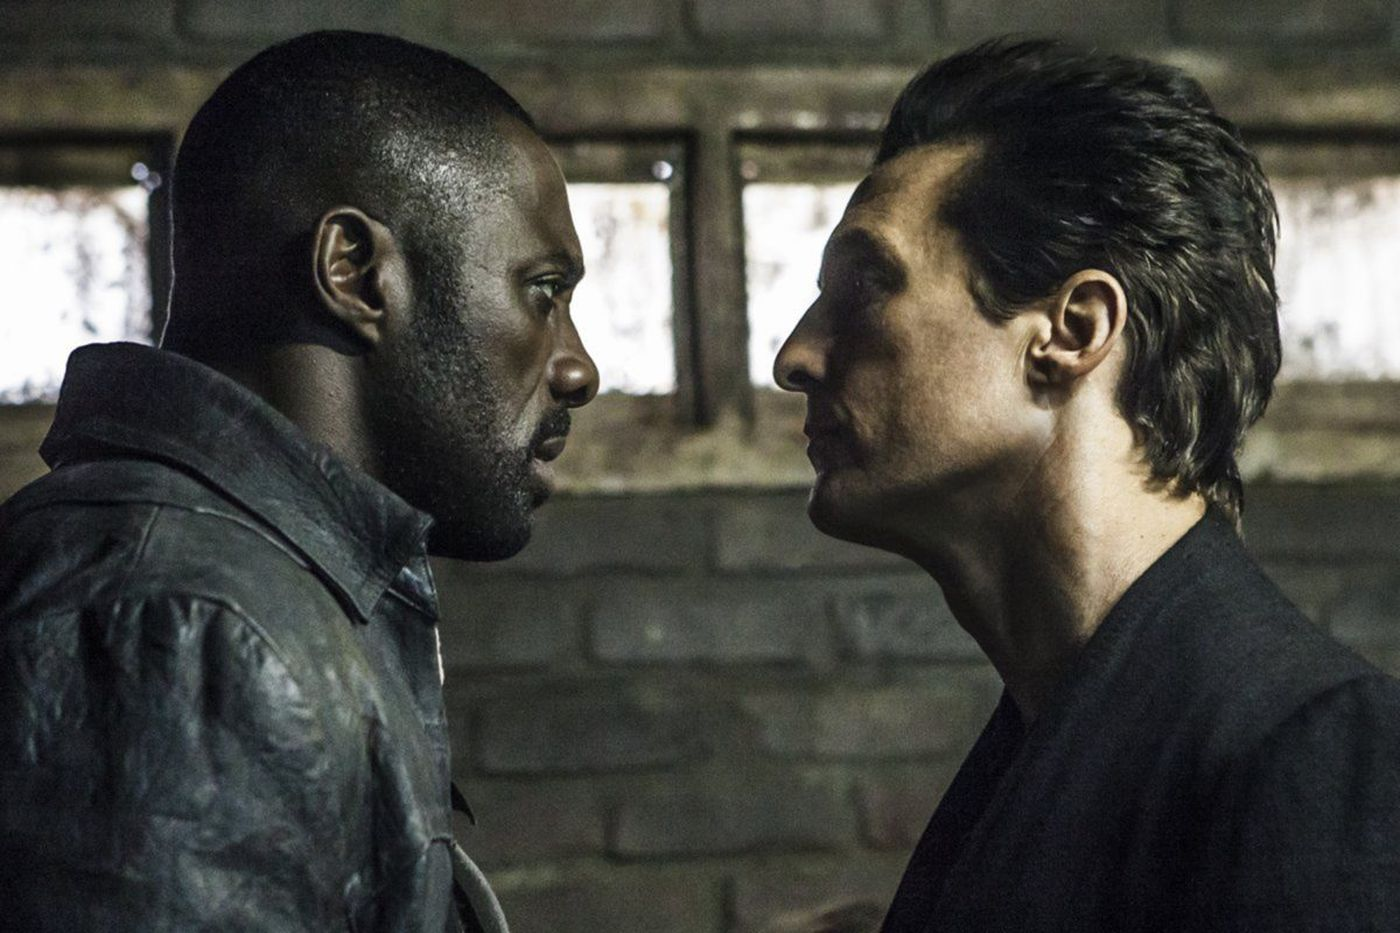 Not even Idris Elba can save 'The Dark Tower'